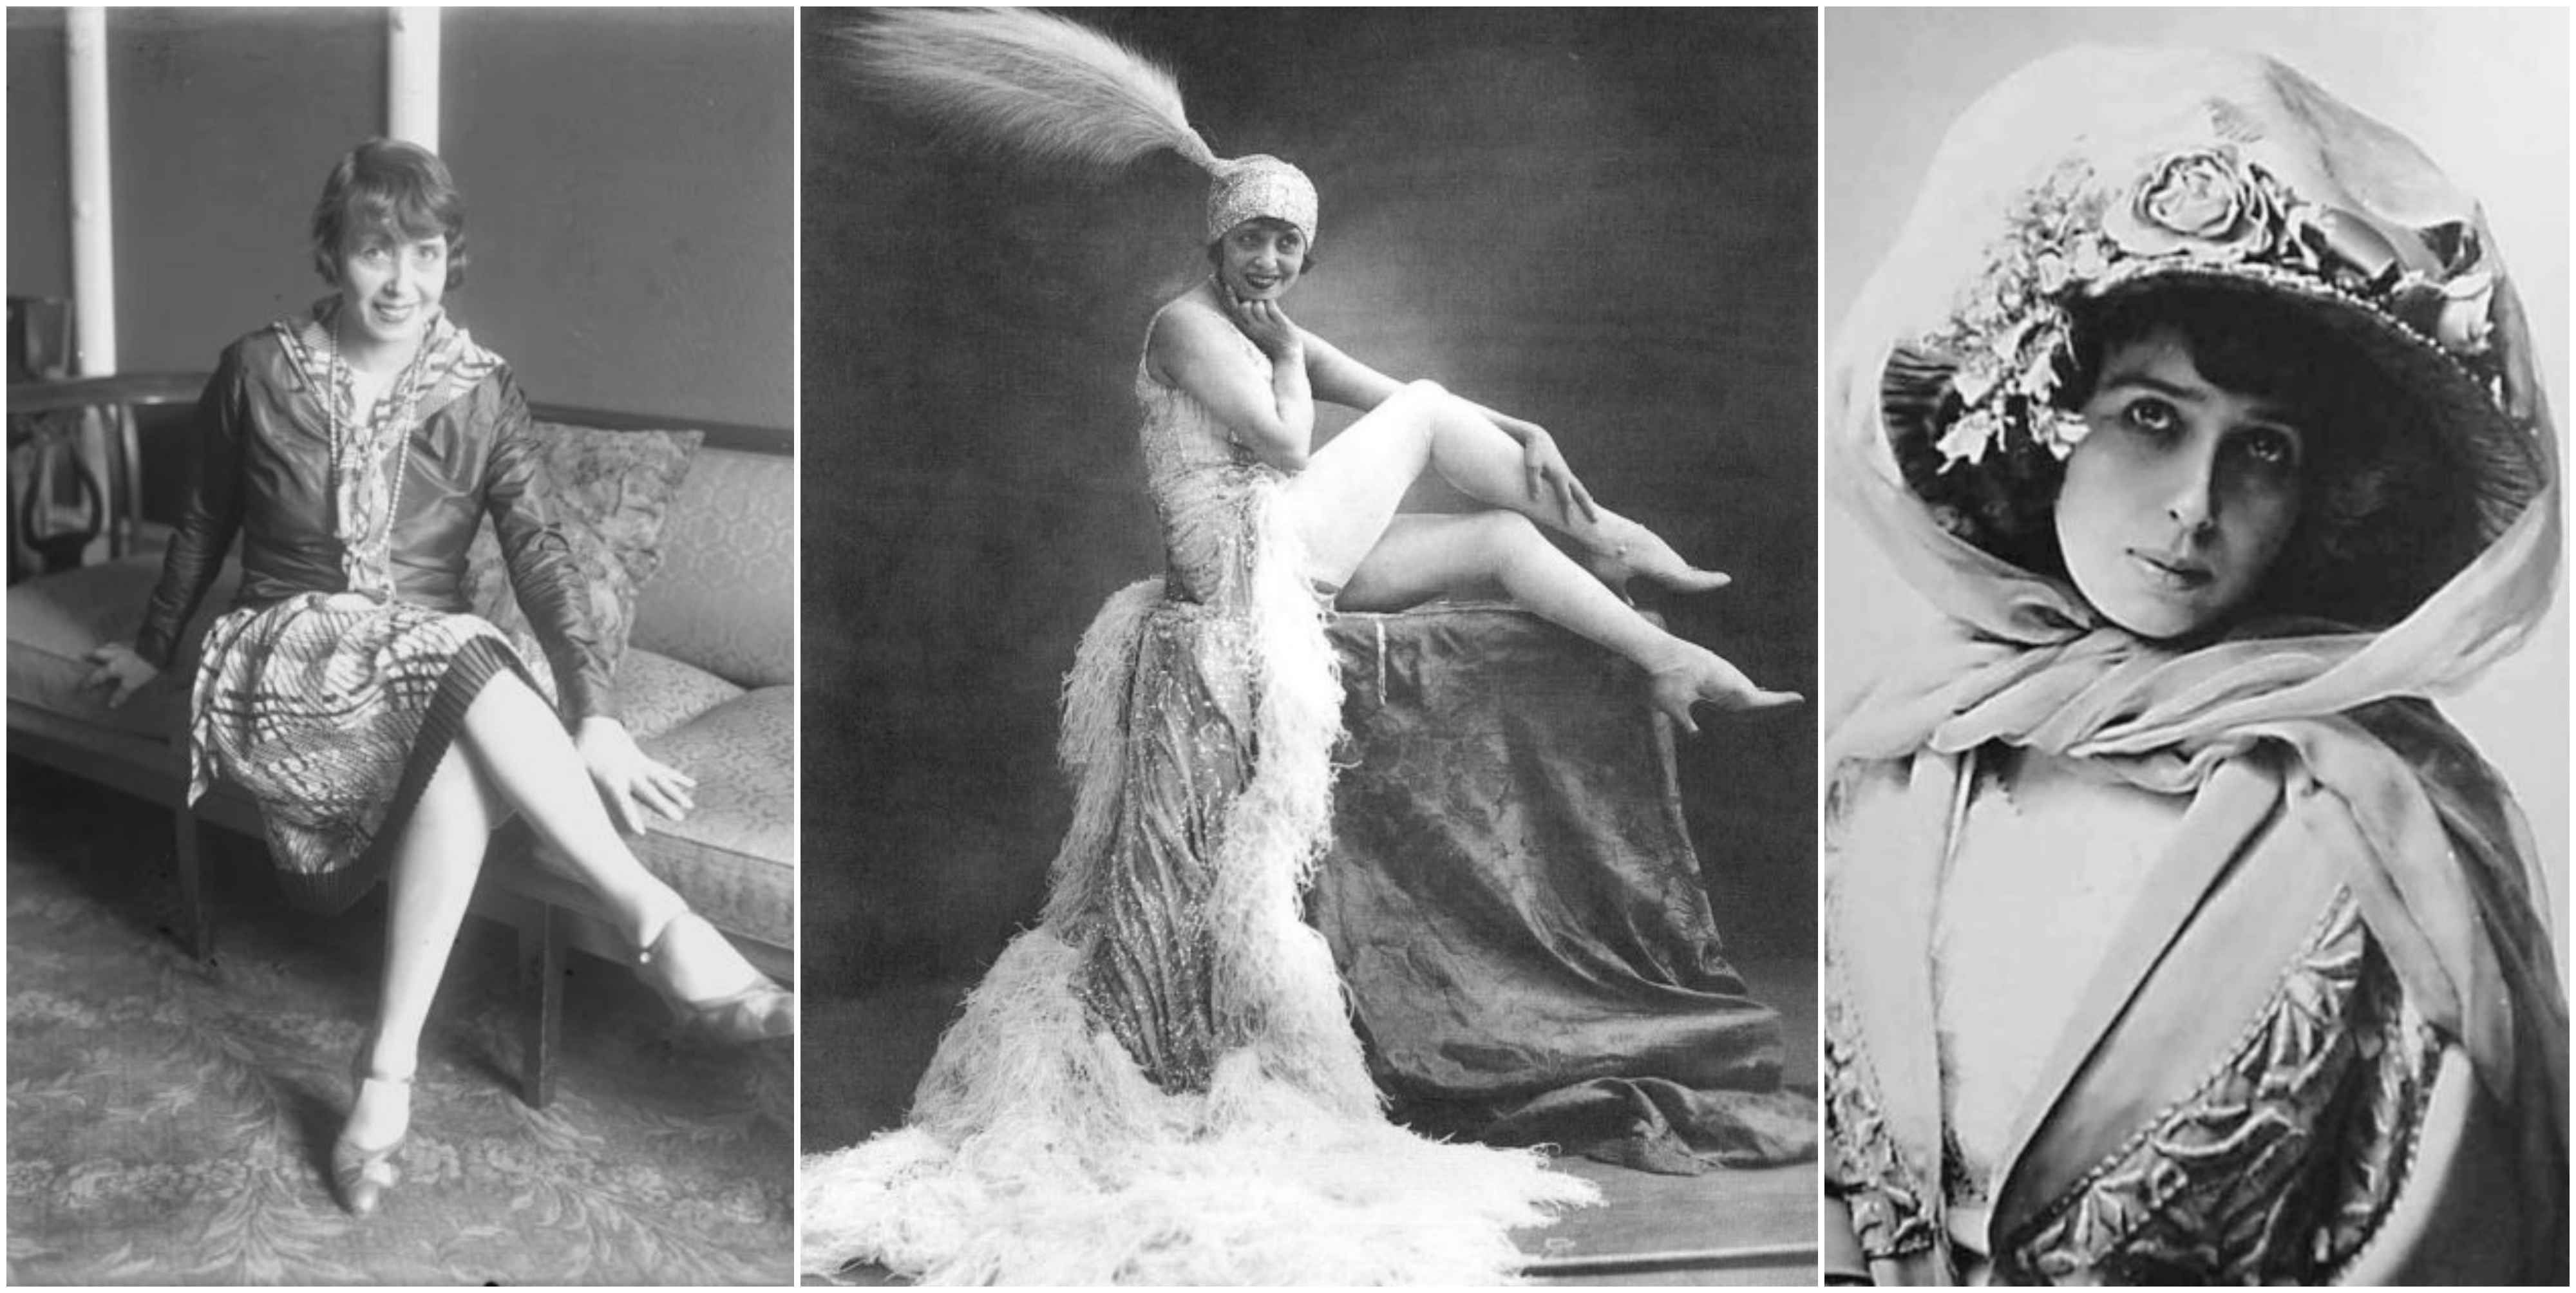 Mistinguett was a French actress and singer, whose birth name was Jeanne Florentine Bourgeois. She was at one time the highest-paid female entertai